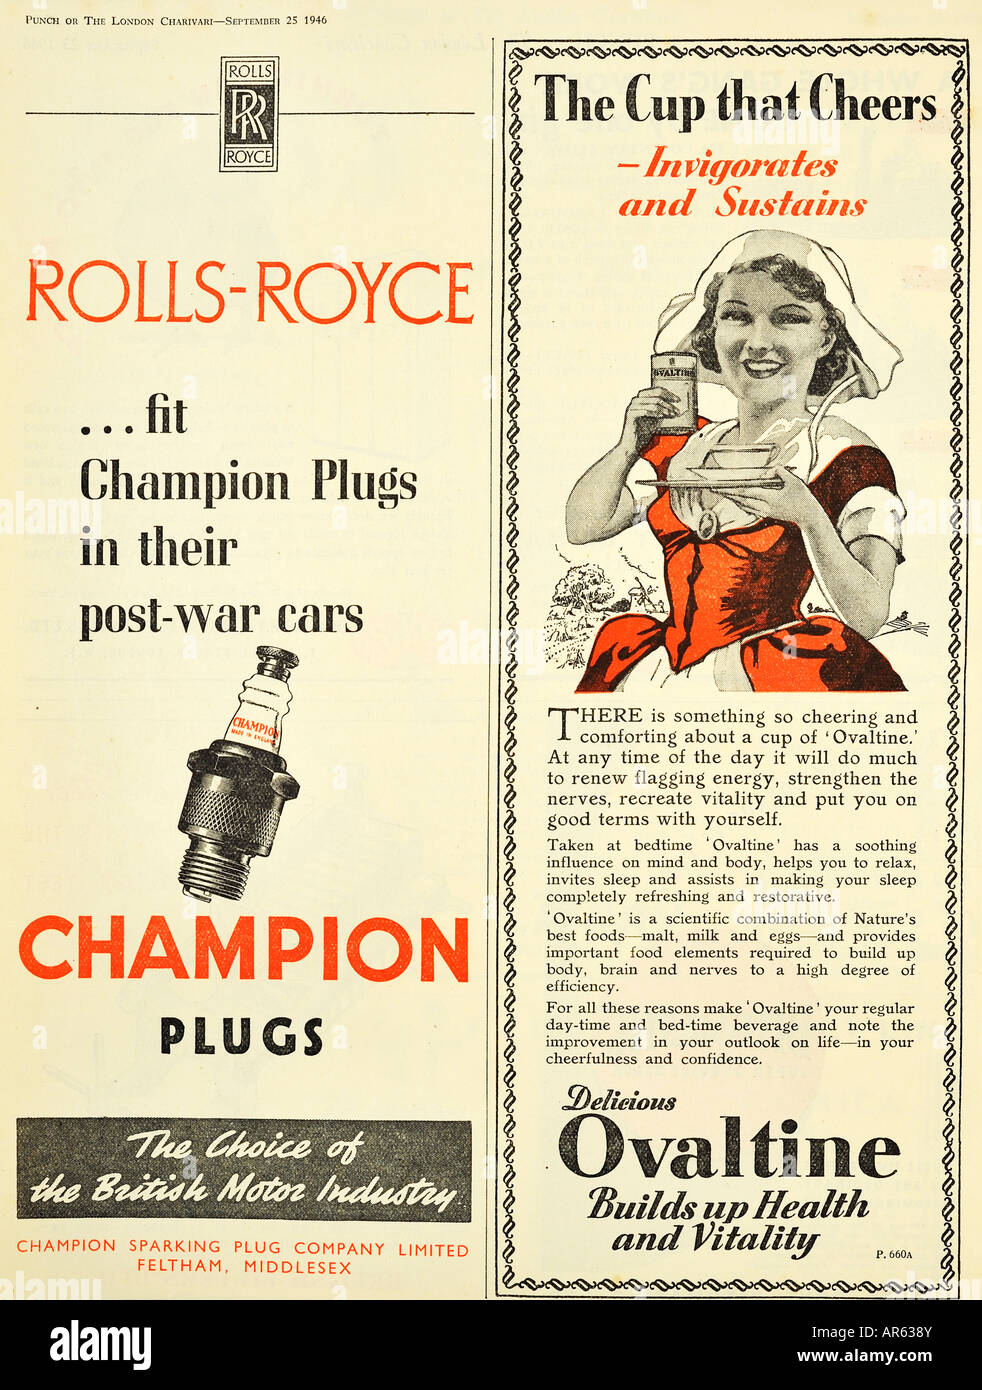 Champion Sparking Plugs and Ovaltine Advertisements from 1946 For Editorial Use Only - Stock Image